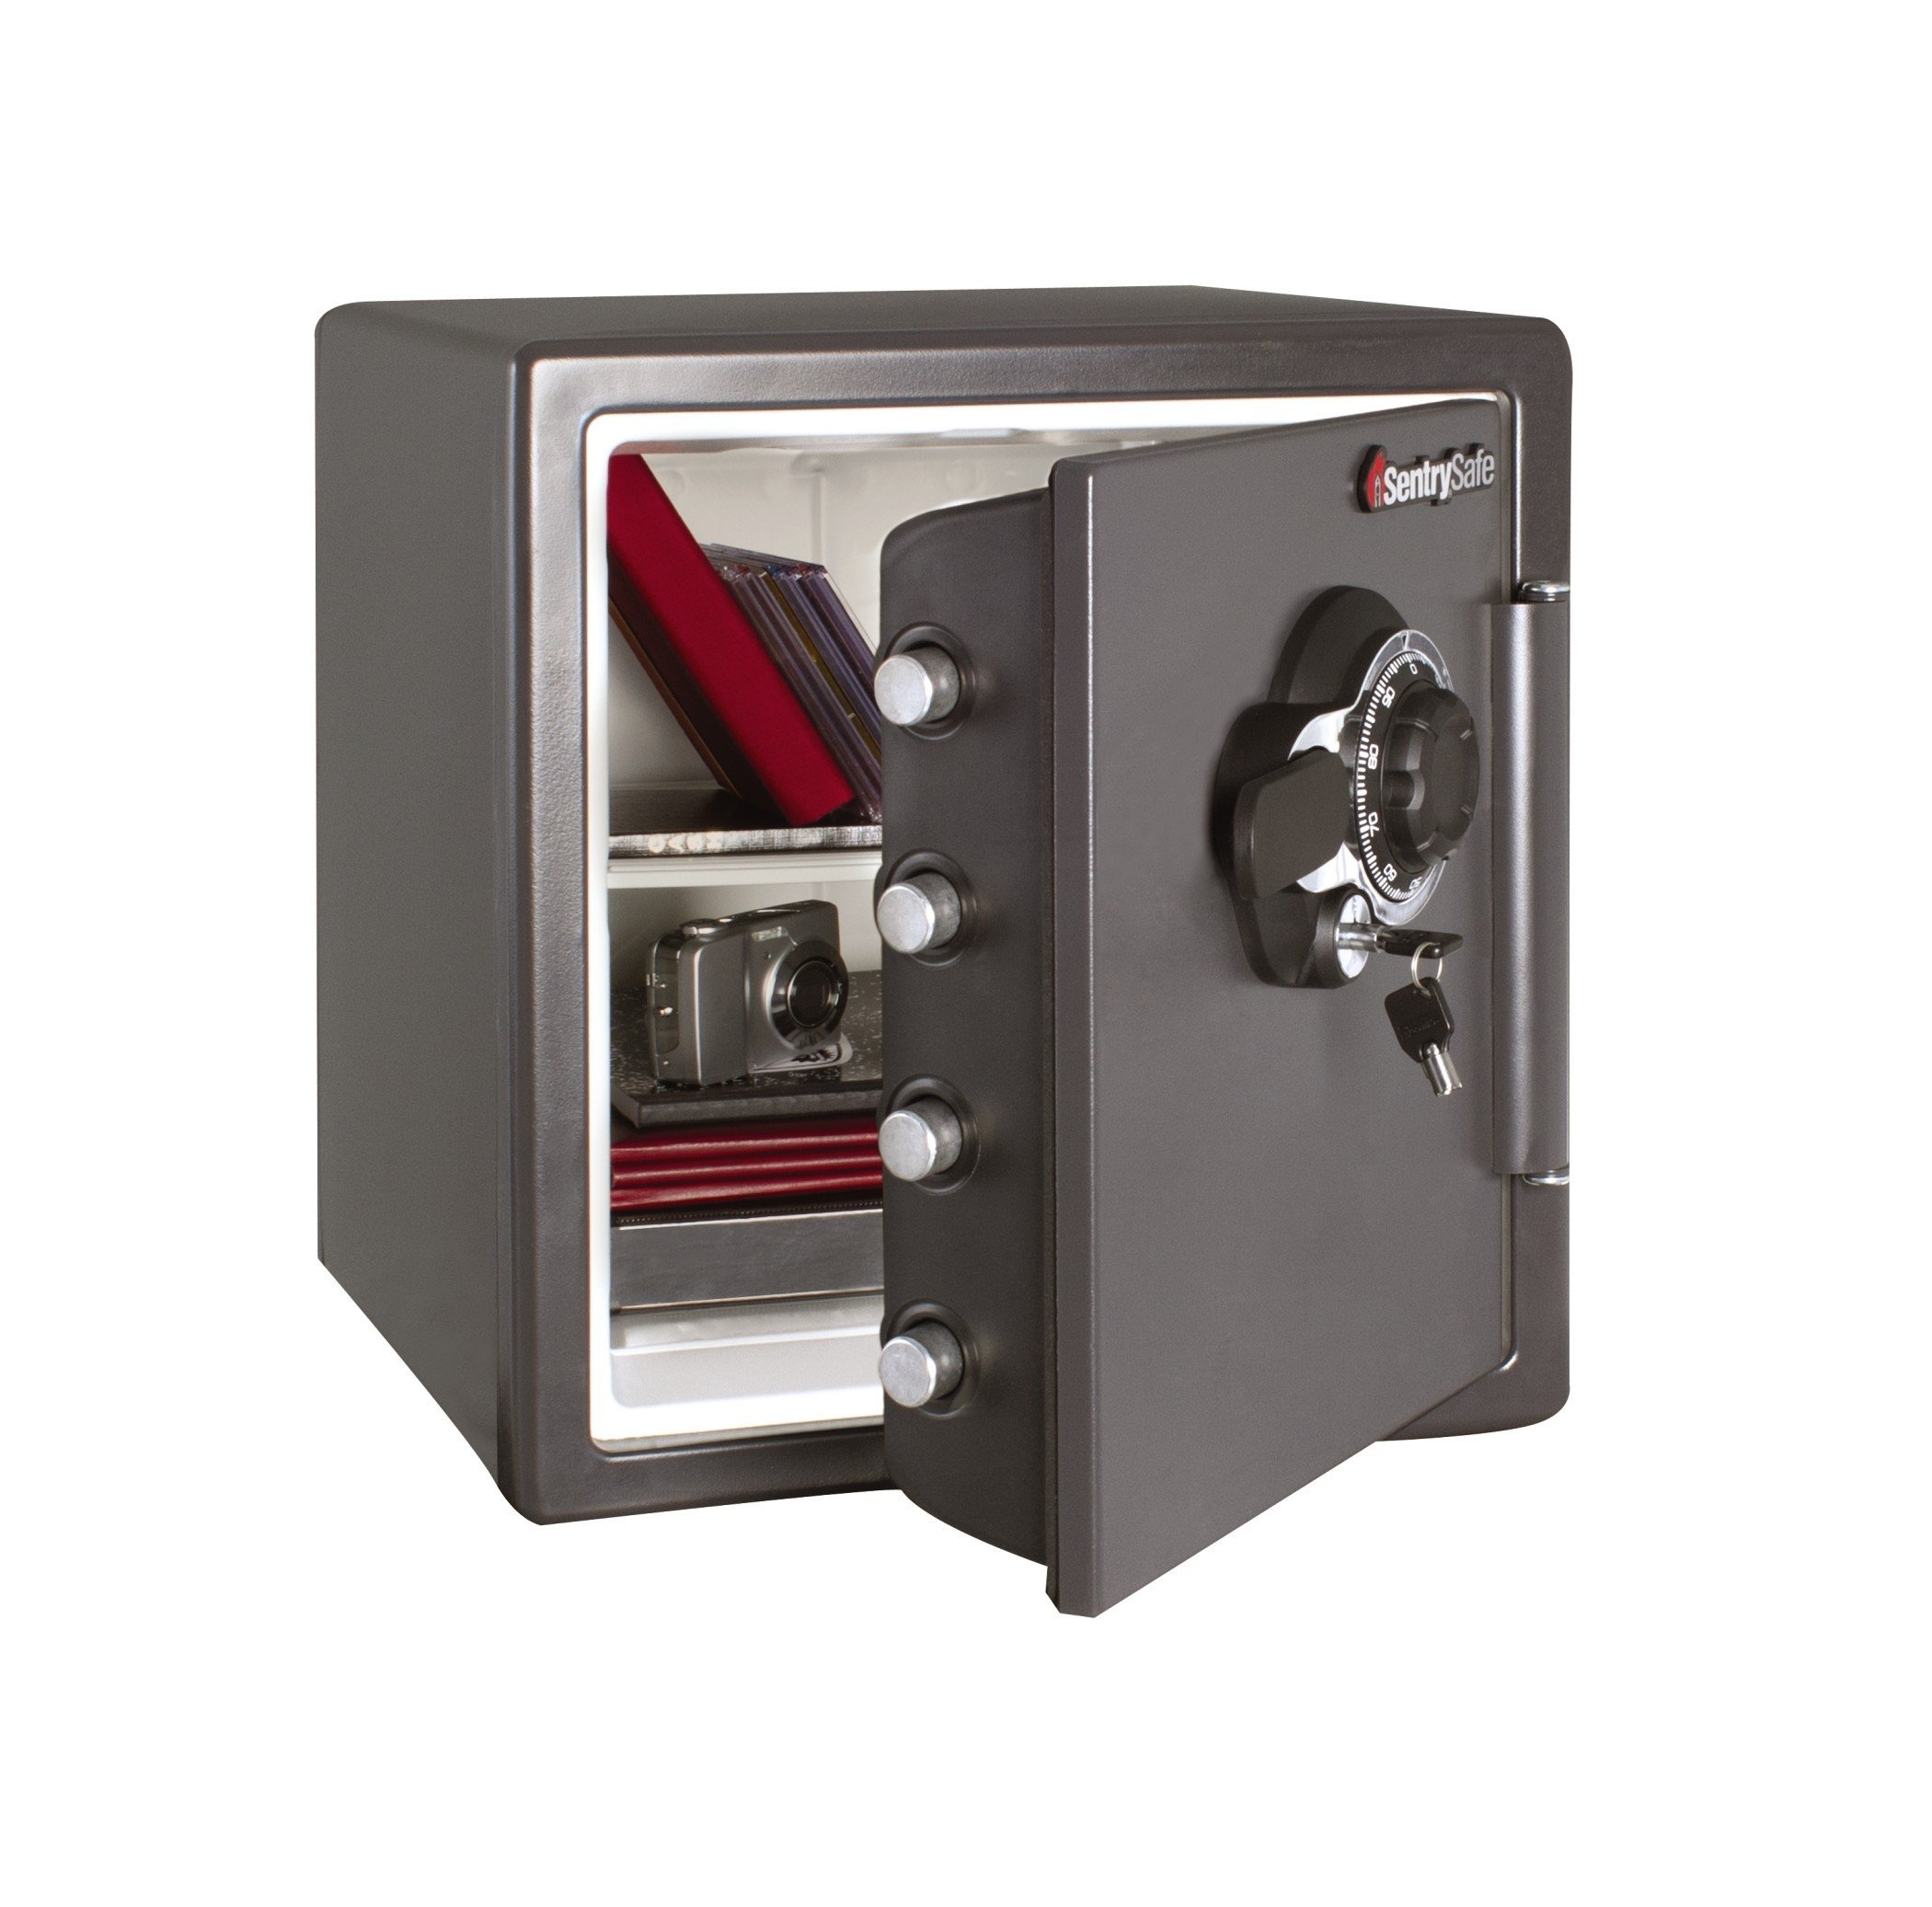 SentrySafe Fire and Water Safe, Extra Large Combination Safe with Dual Key Lock, 1.23 Cubic Feet, SFW123DSB